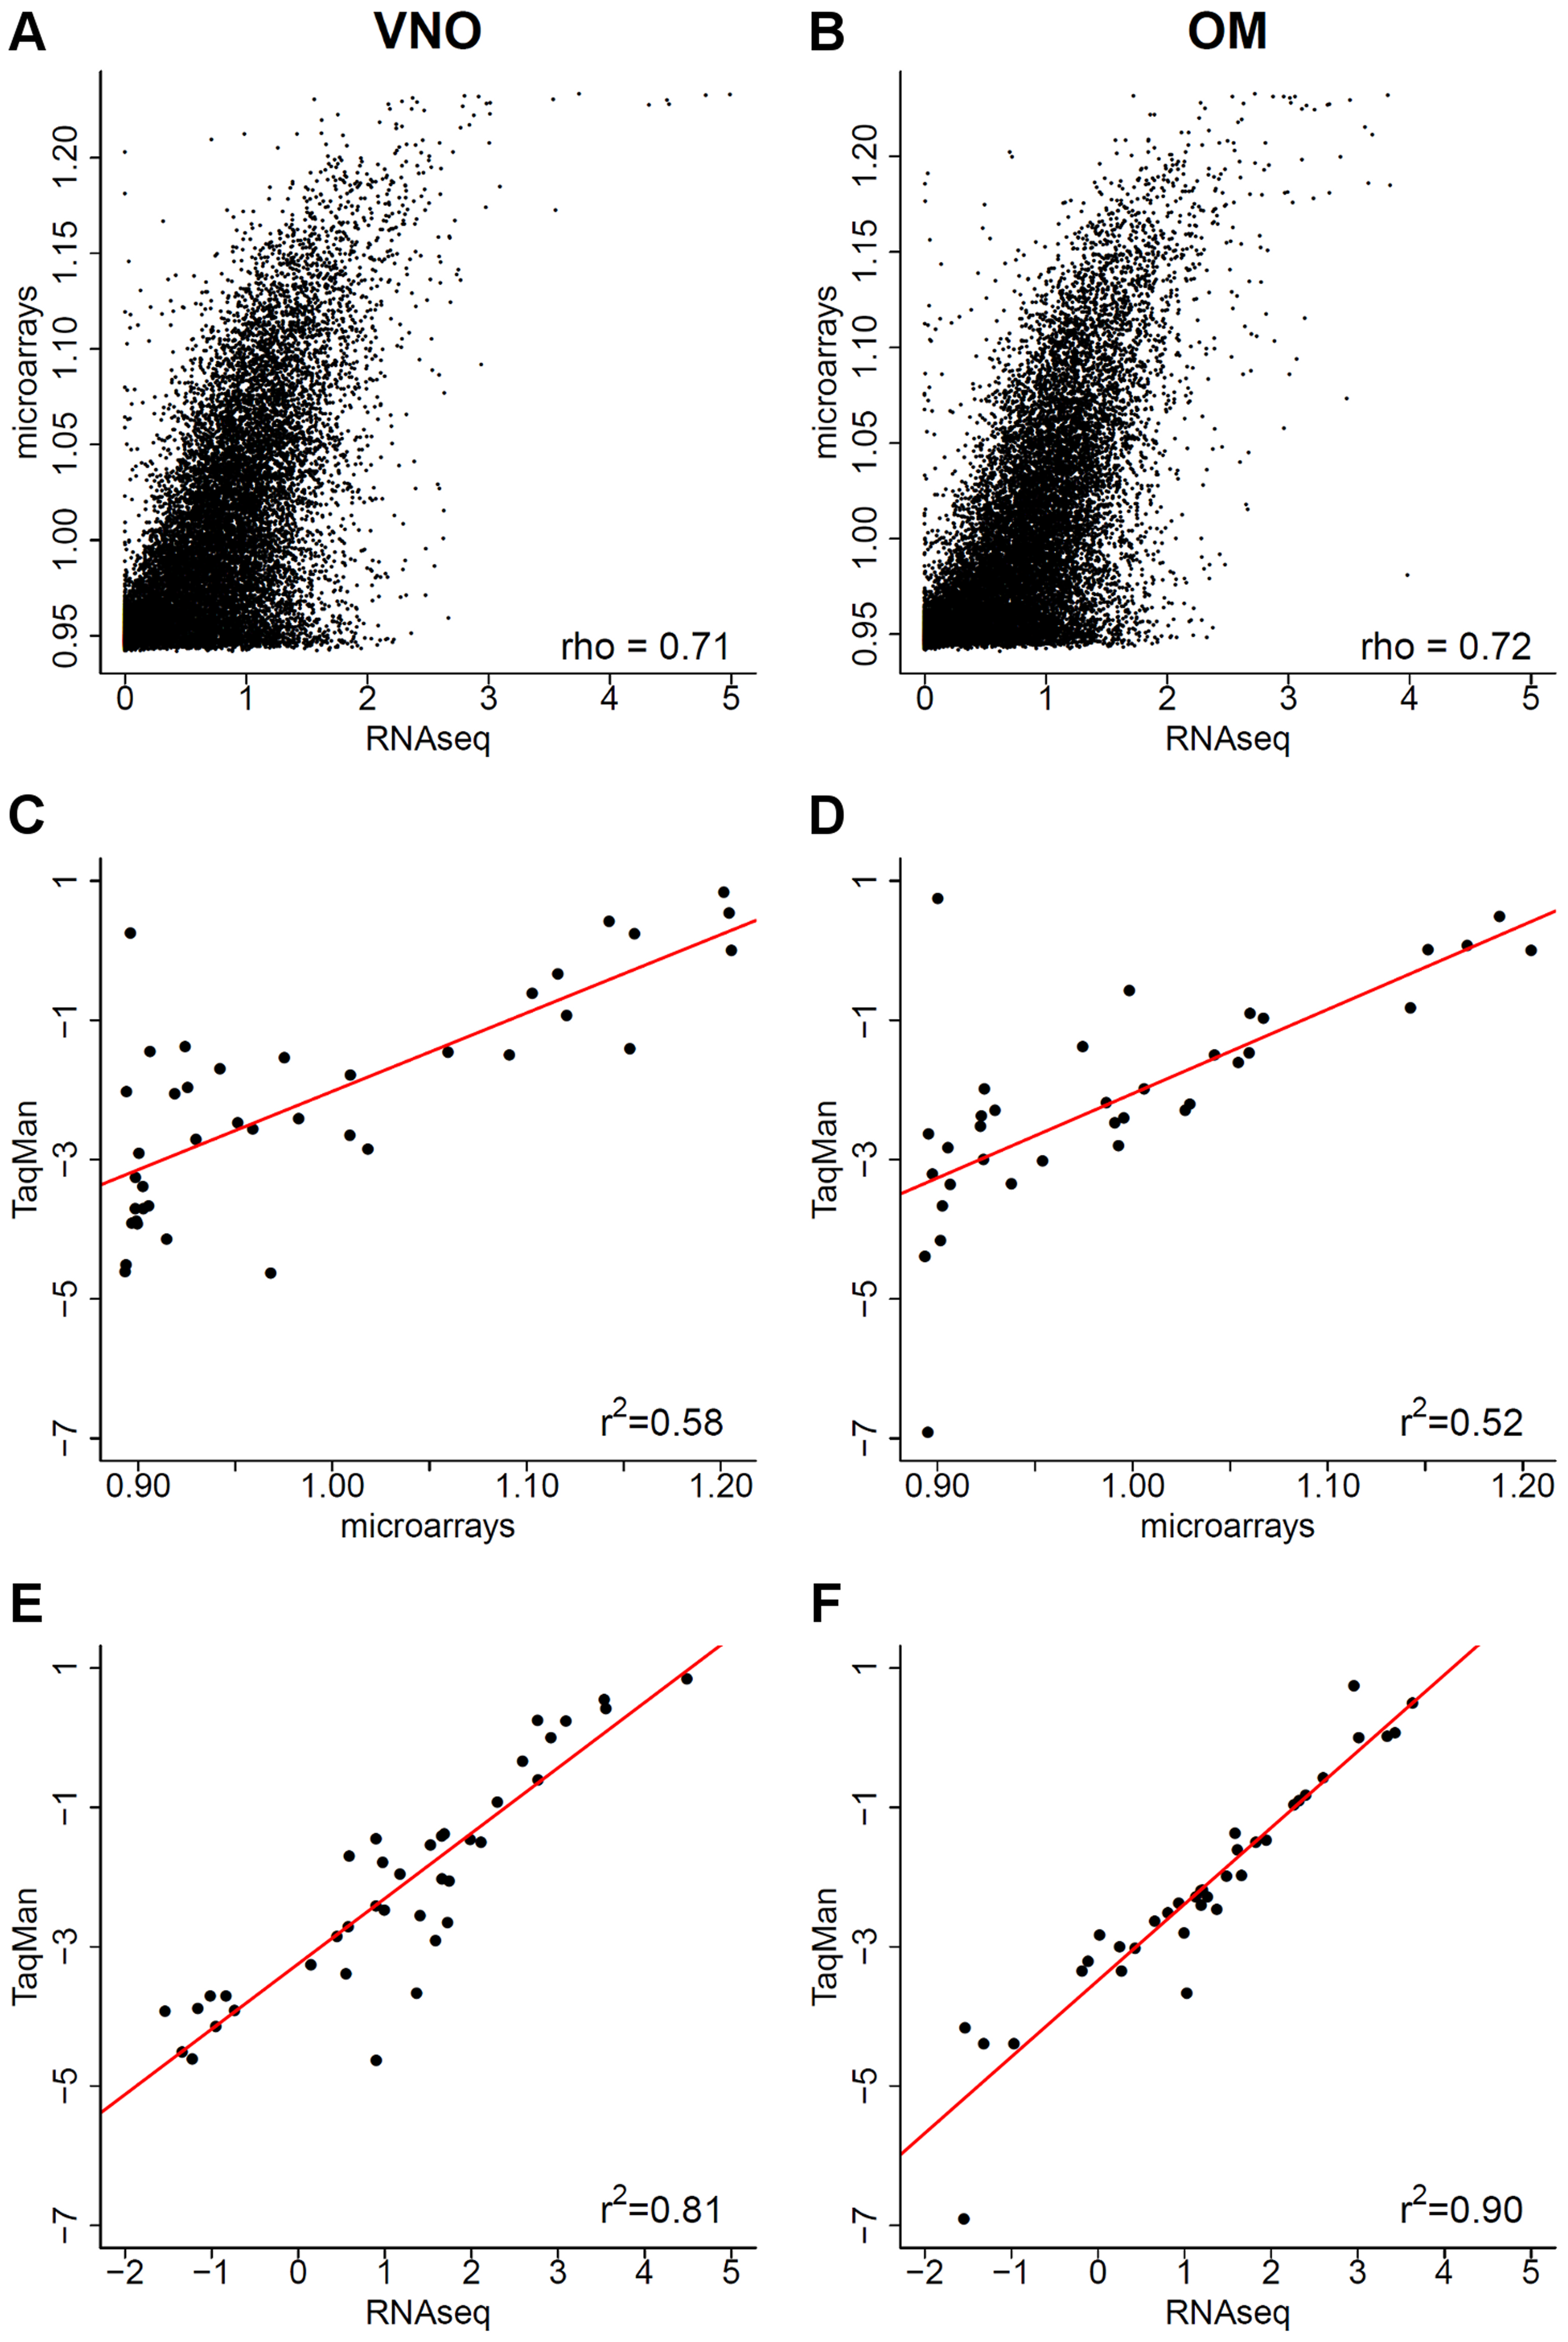 Comparison of RNAseq data to microarrays and qRT-PCR.